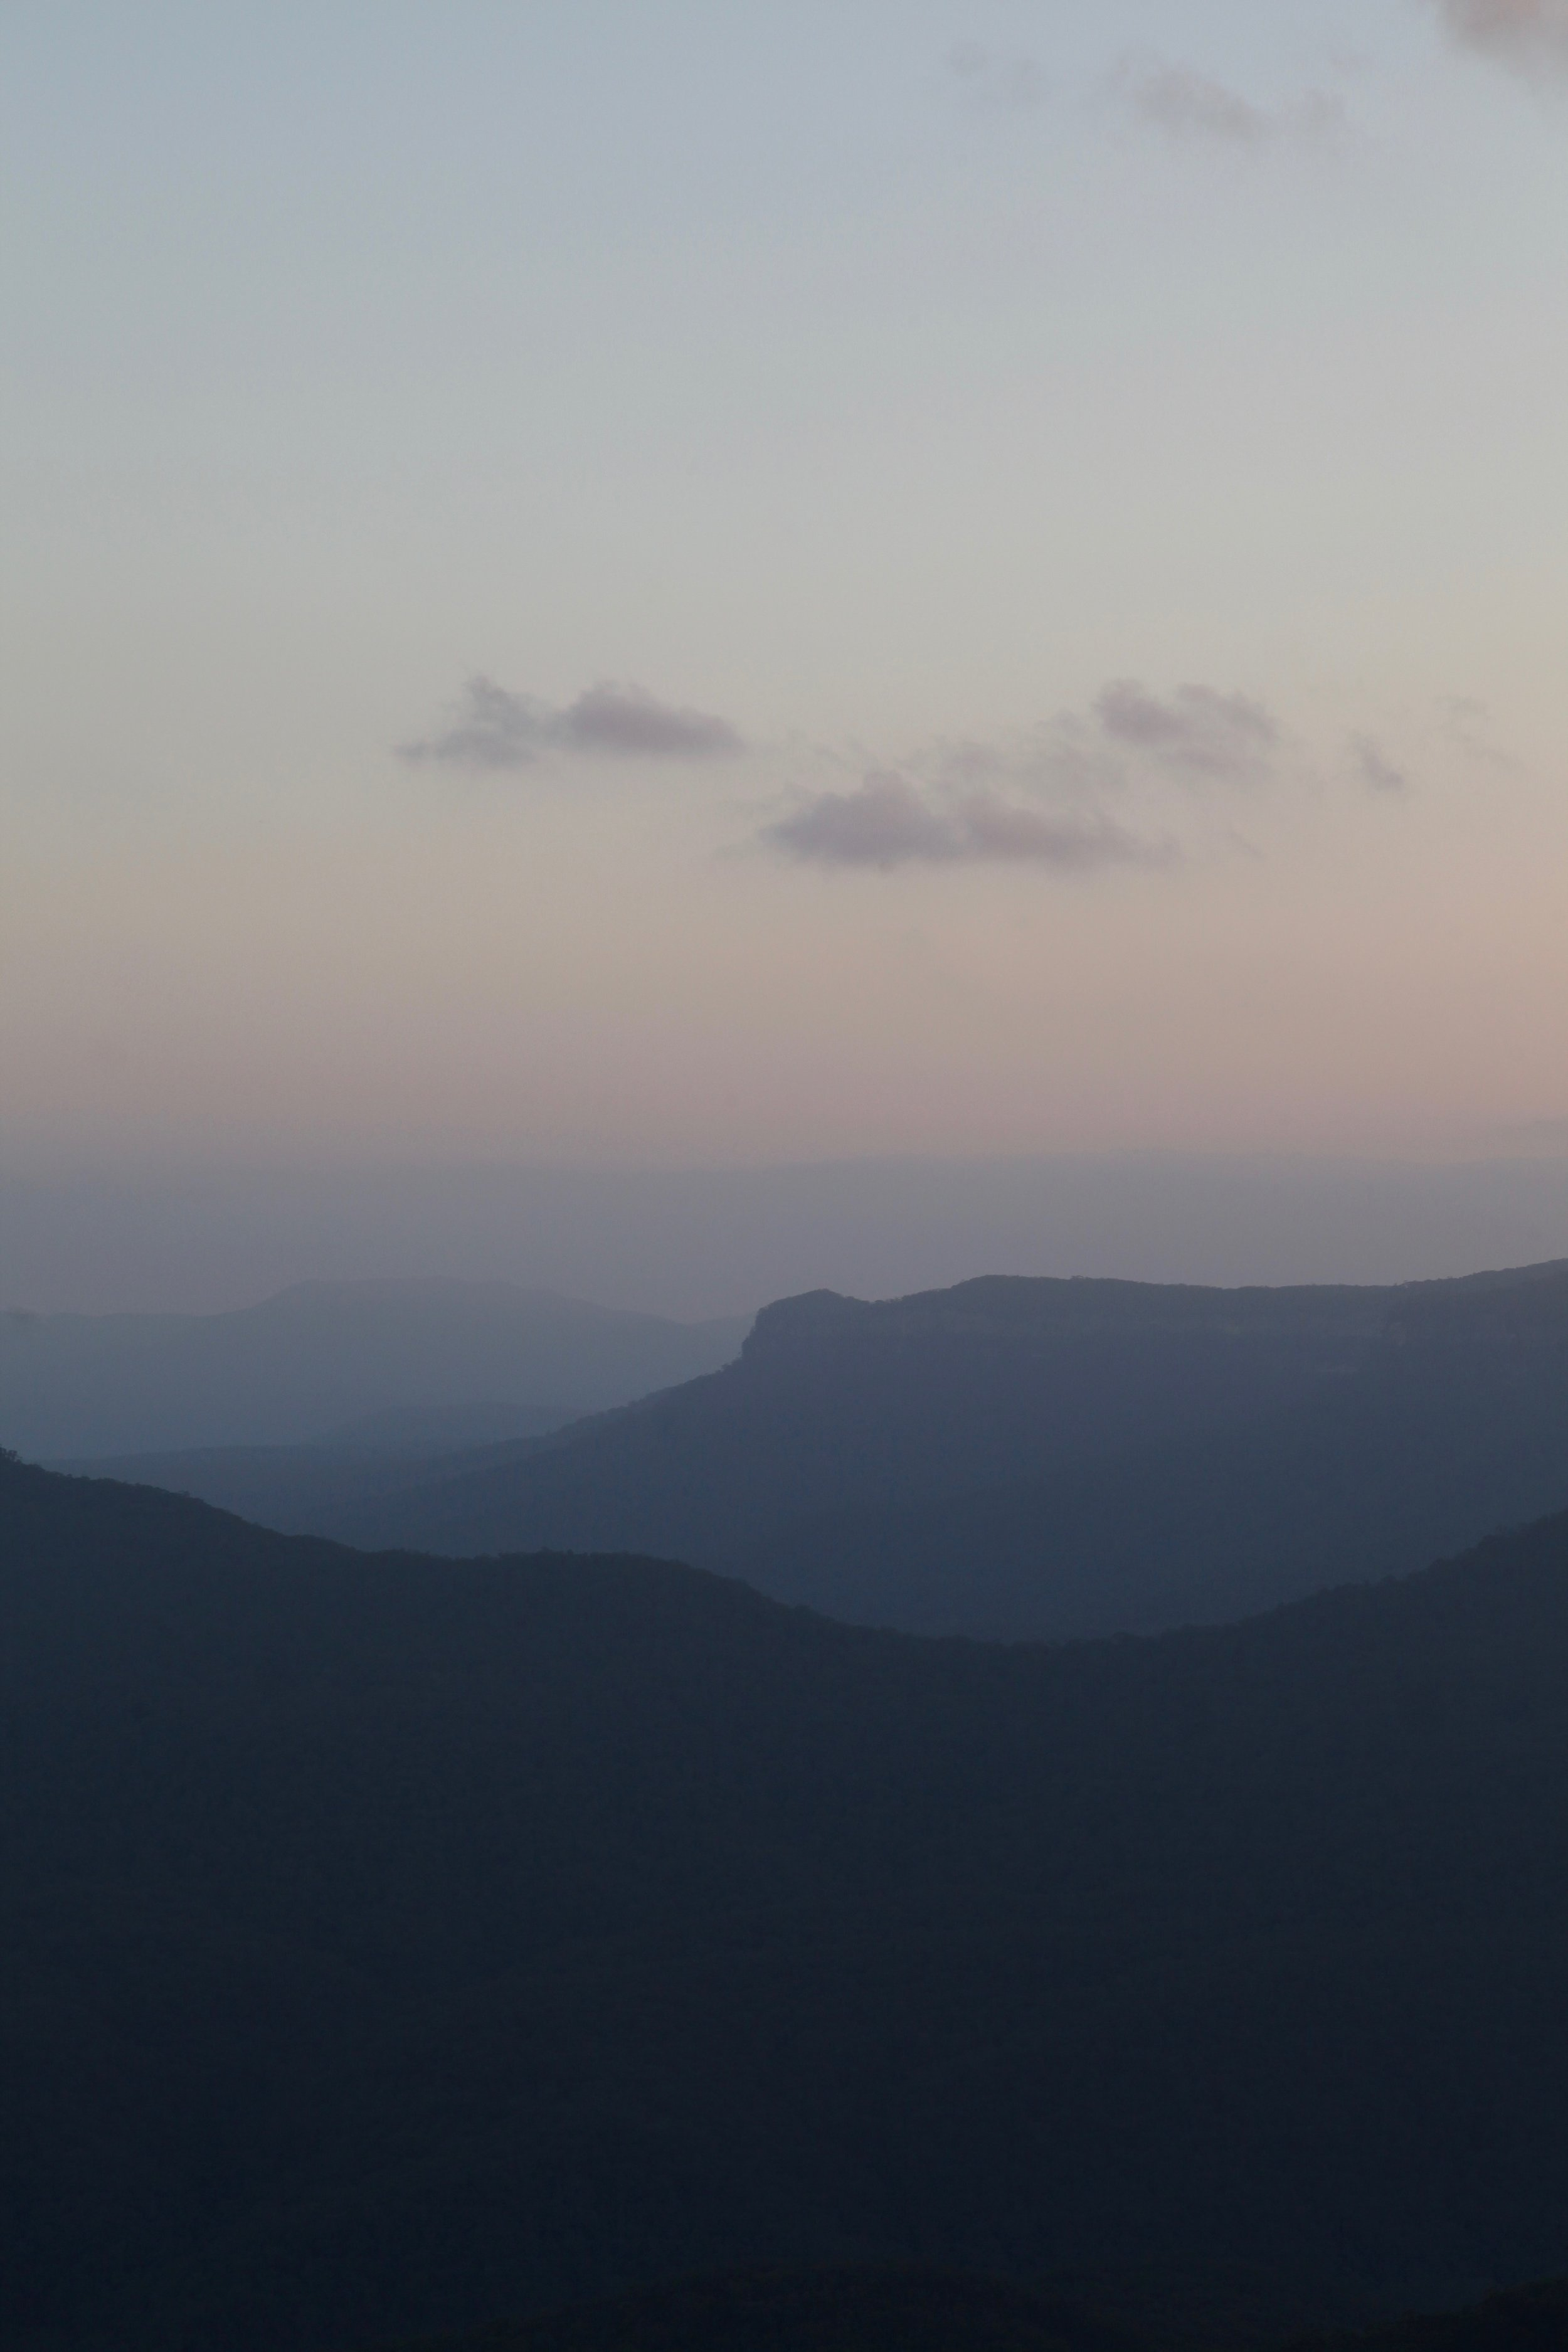 Sunset views across the Blue Mountains National Park.